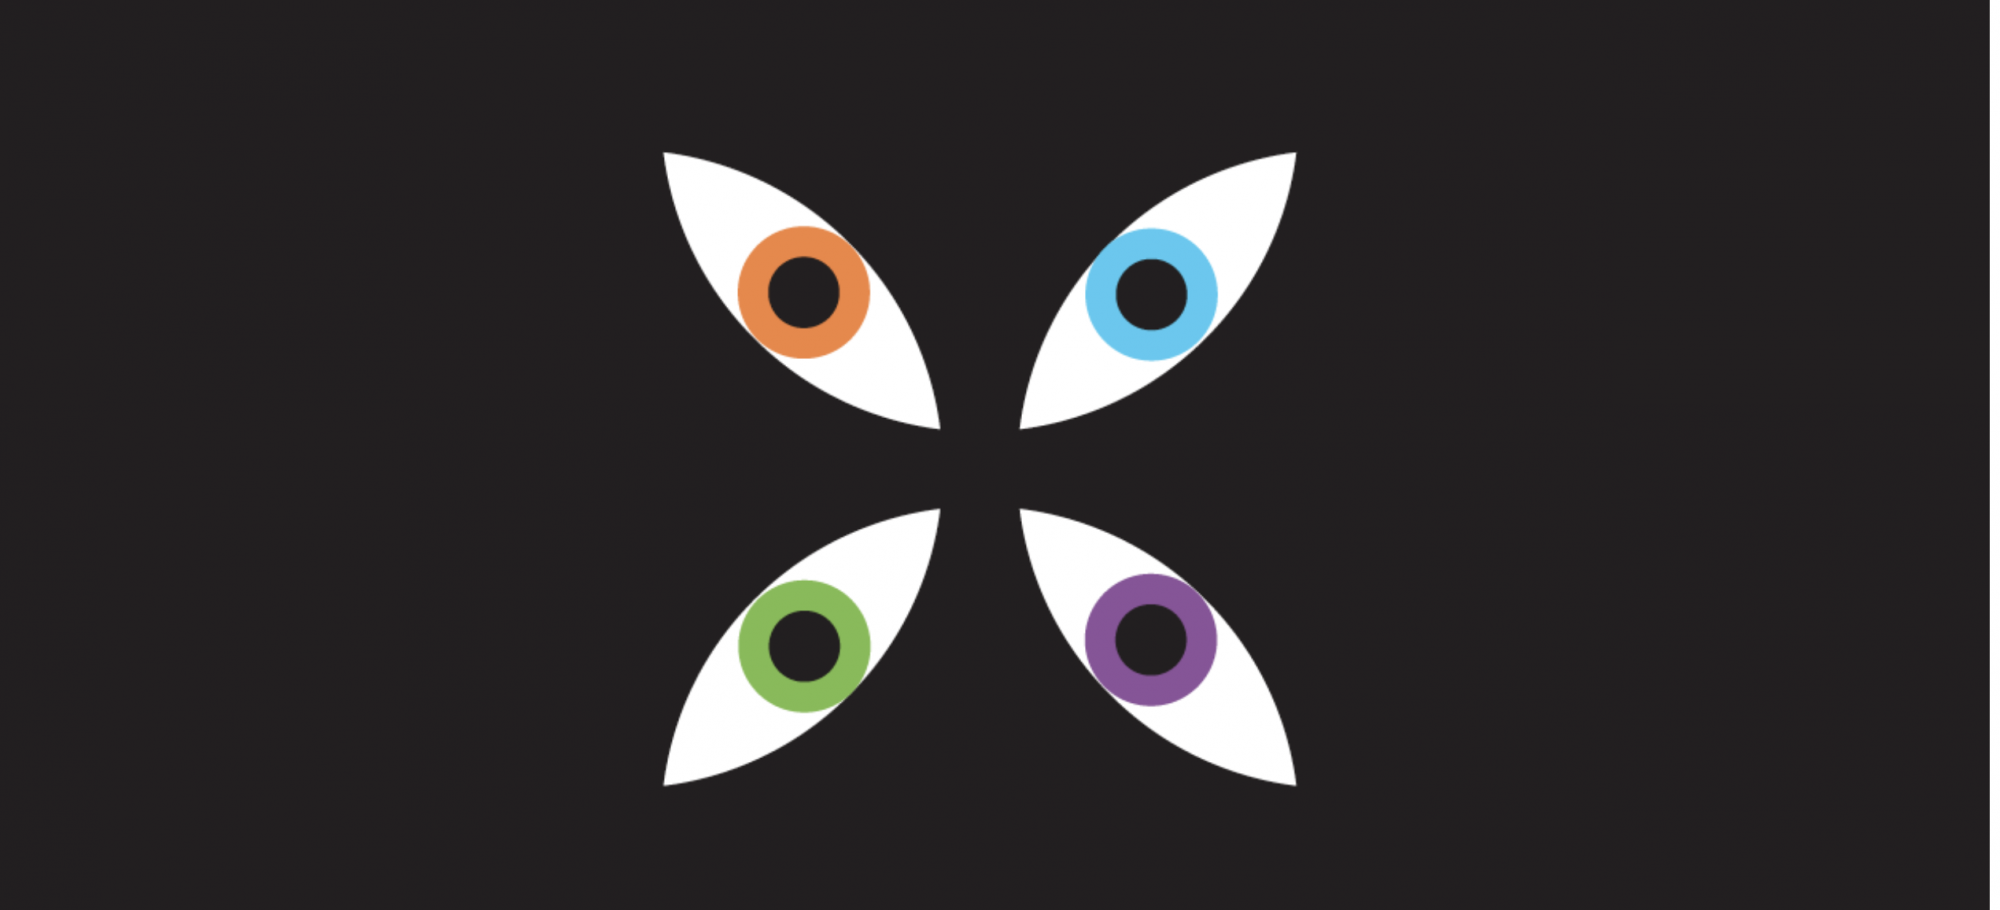 The Eye Project — York Mediale